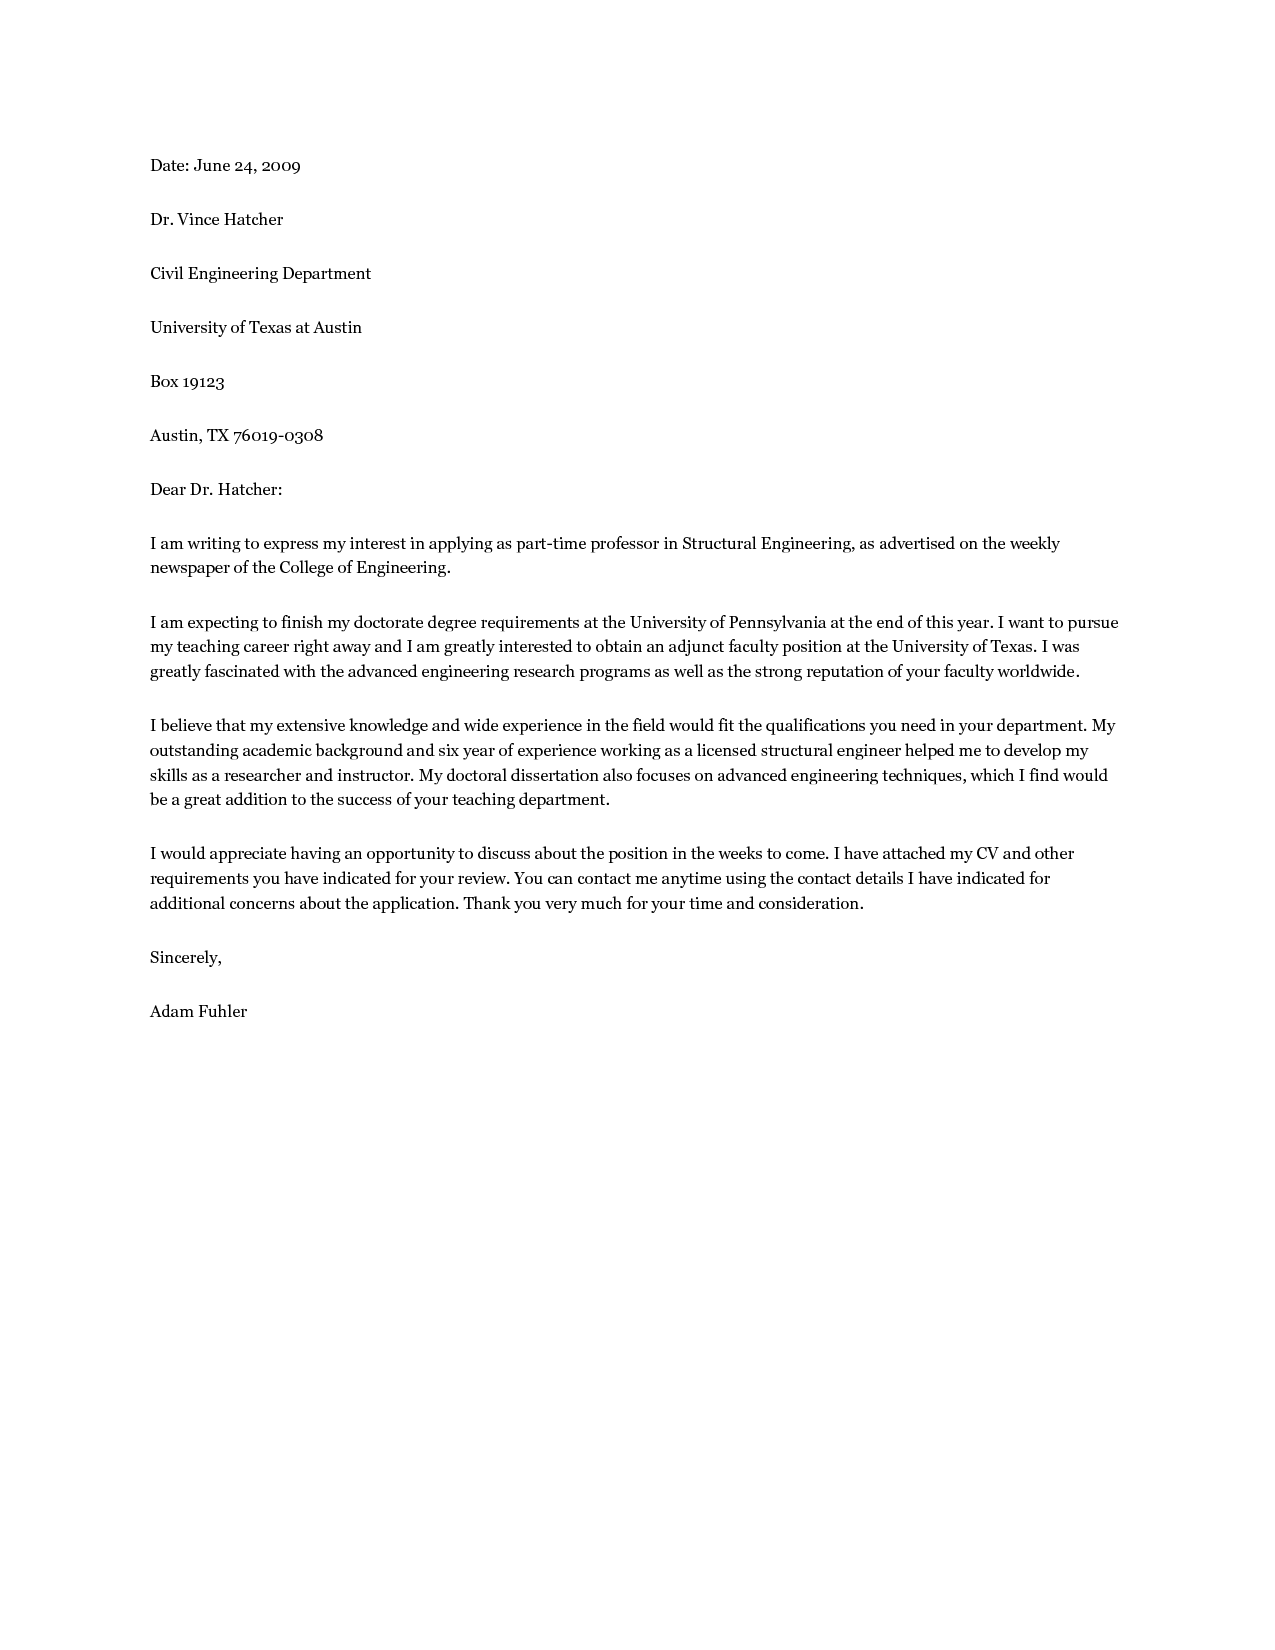 cover letter jobs sample of covering letter for a job patient